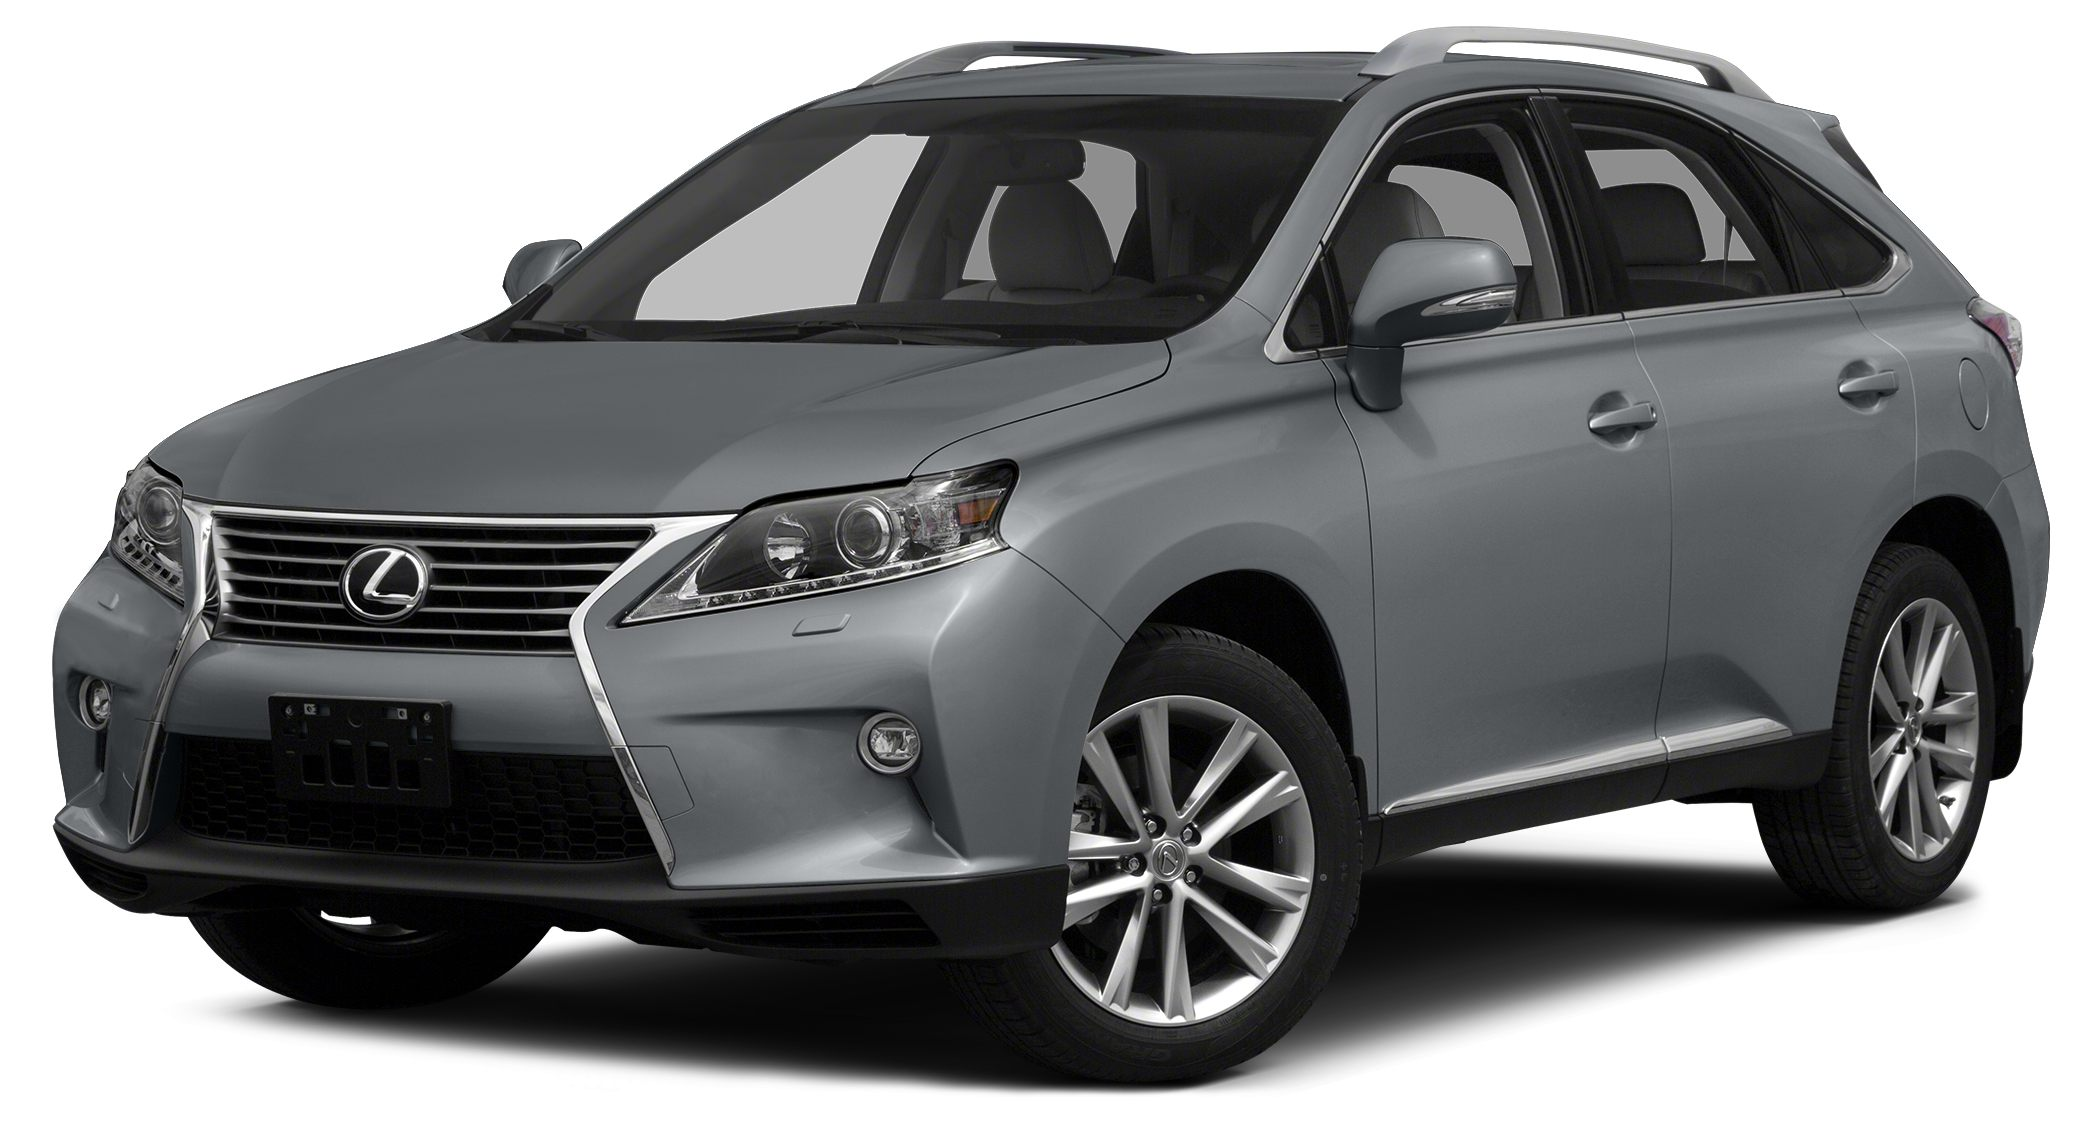 2015 Lexus RX 350 350 If you demand the best things in life this great 2015 Lexus RX is the gas-s